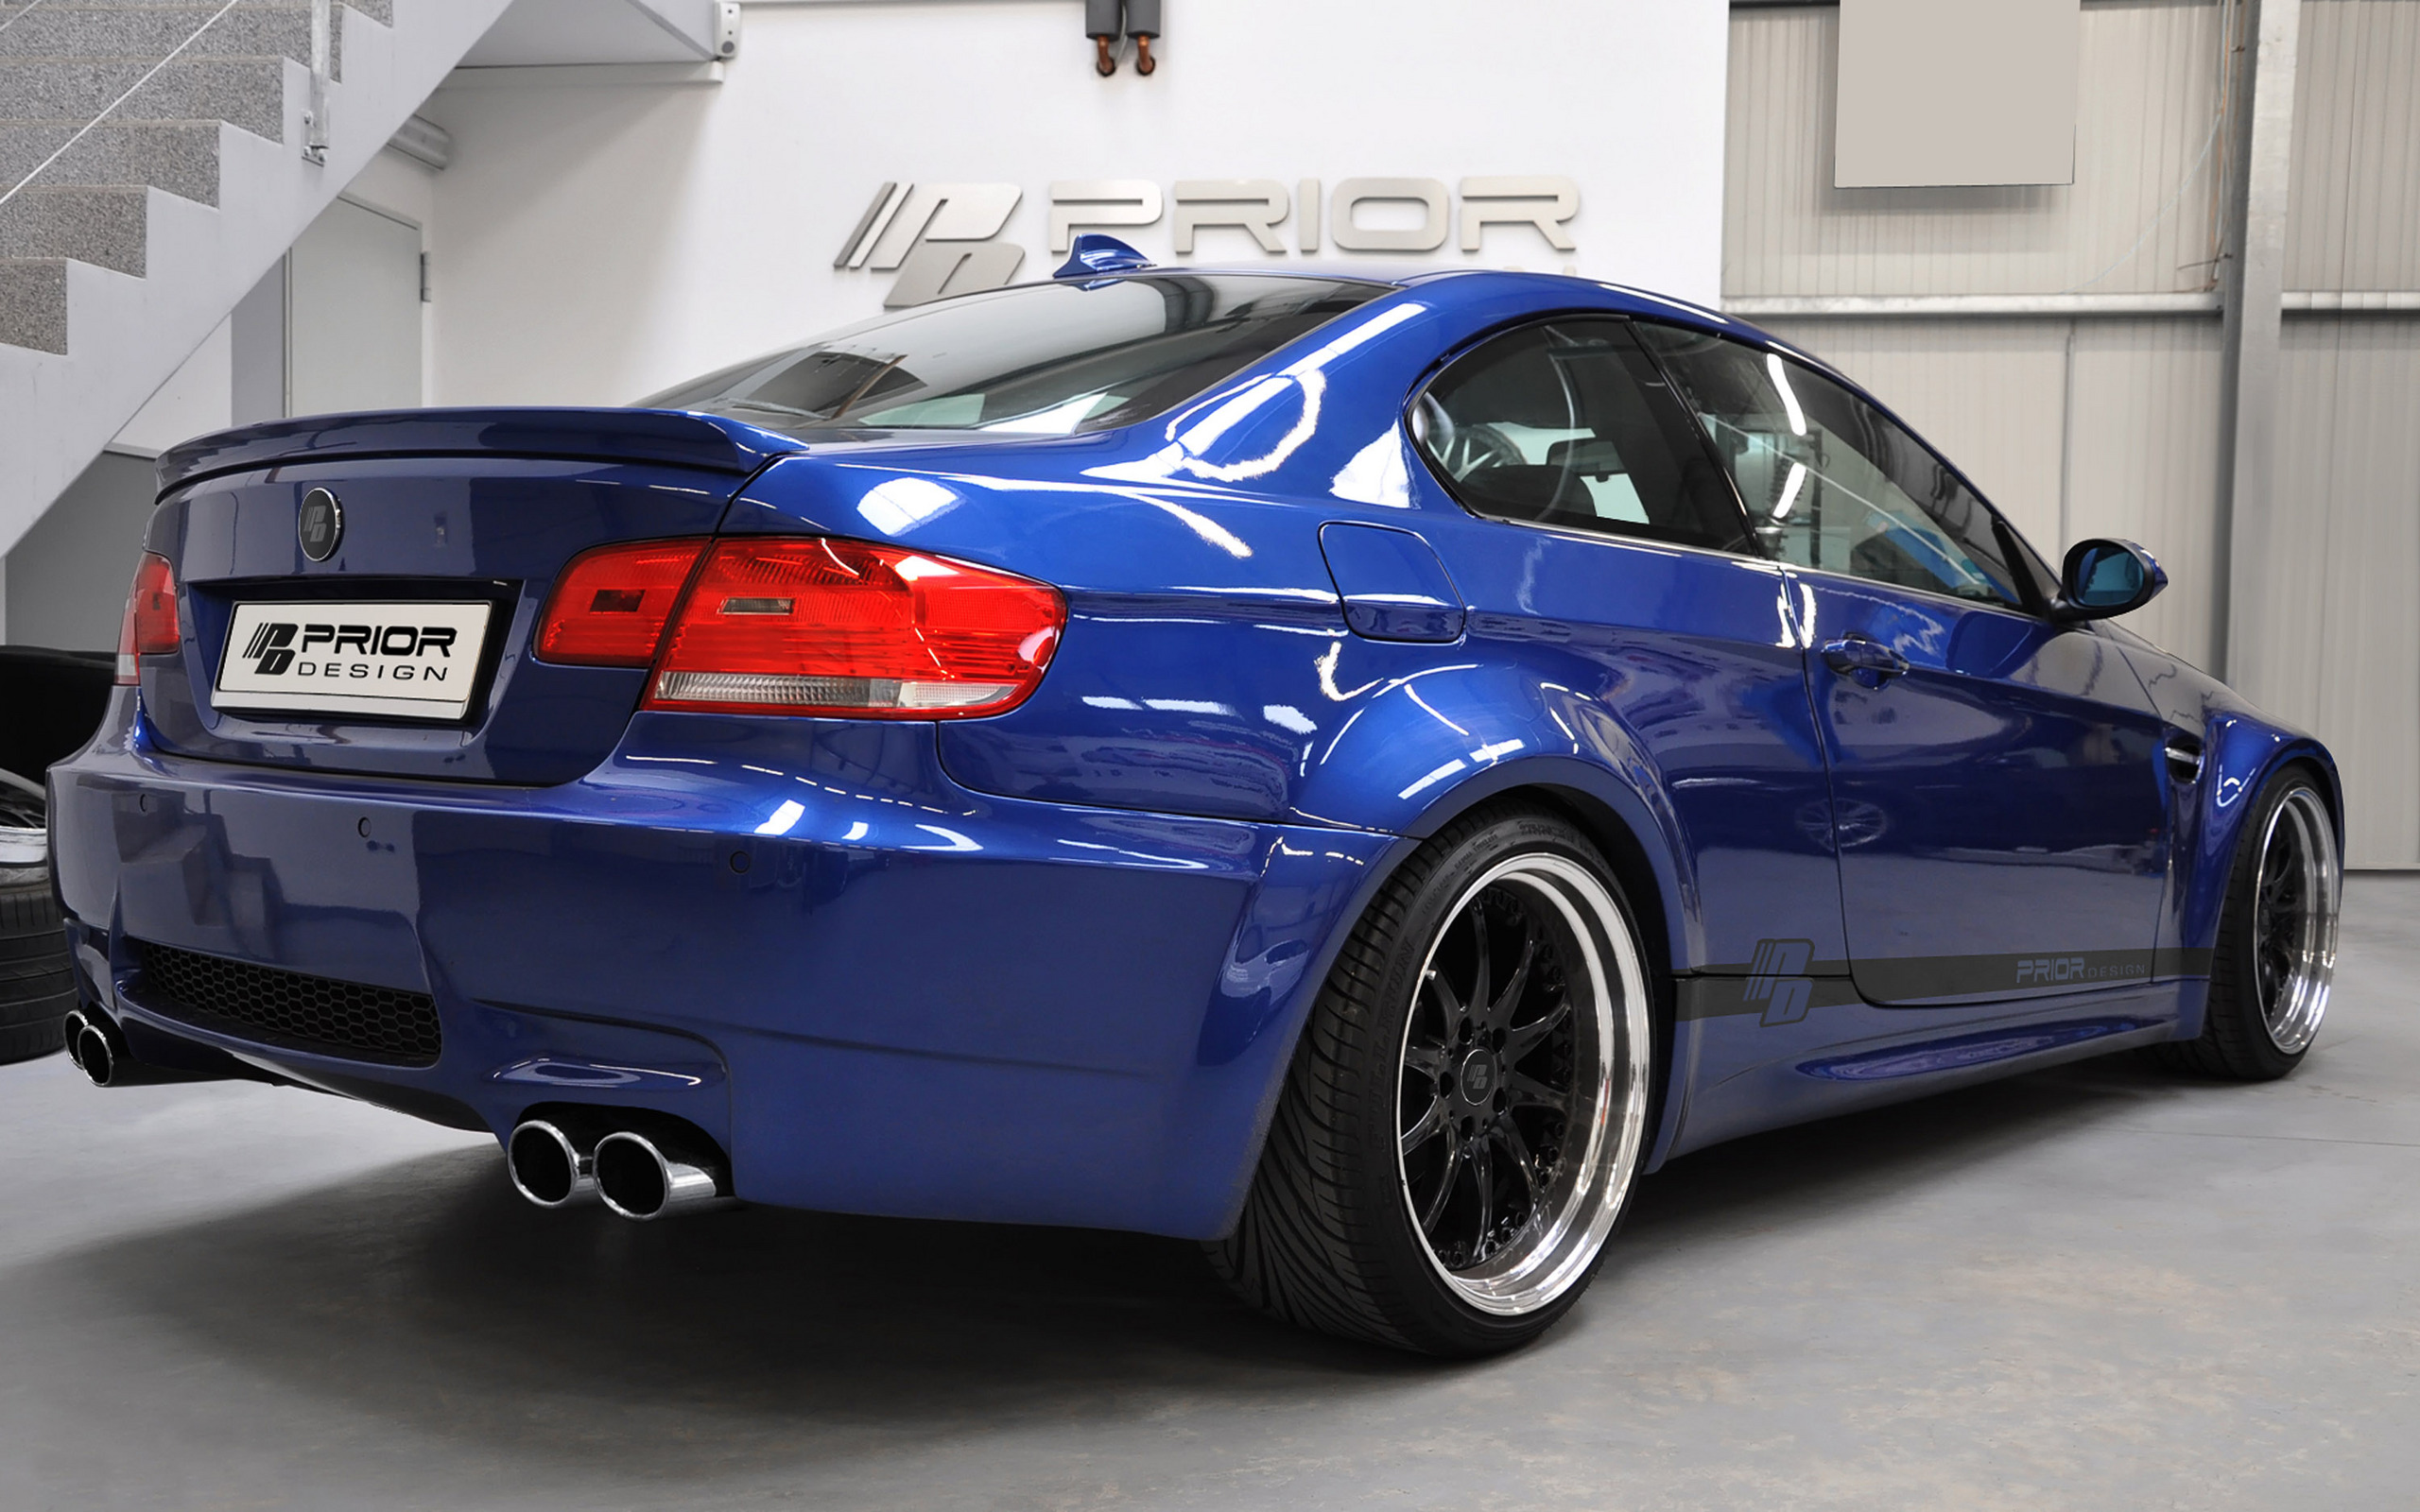 bmw e92 m3 by prior design bmw photo 26822475 fanpop. Black Bedroom Furniture Sets. Home Design Ideas